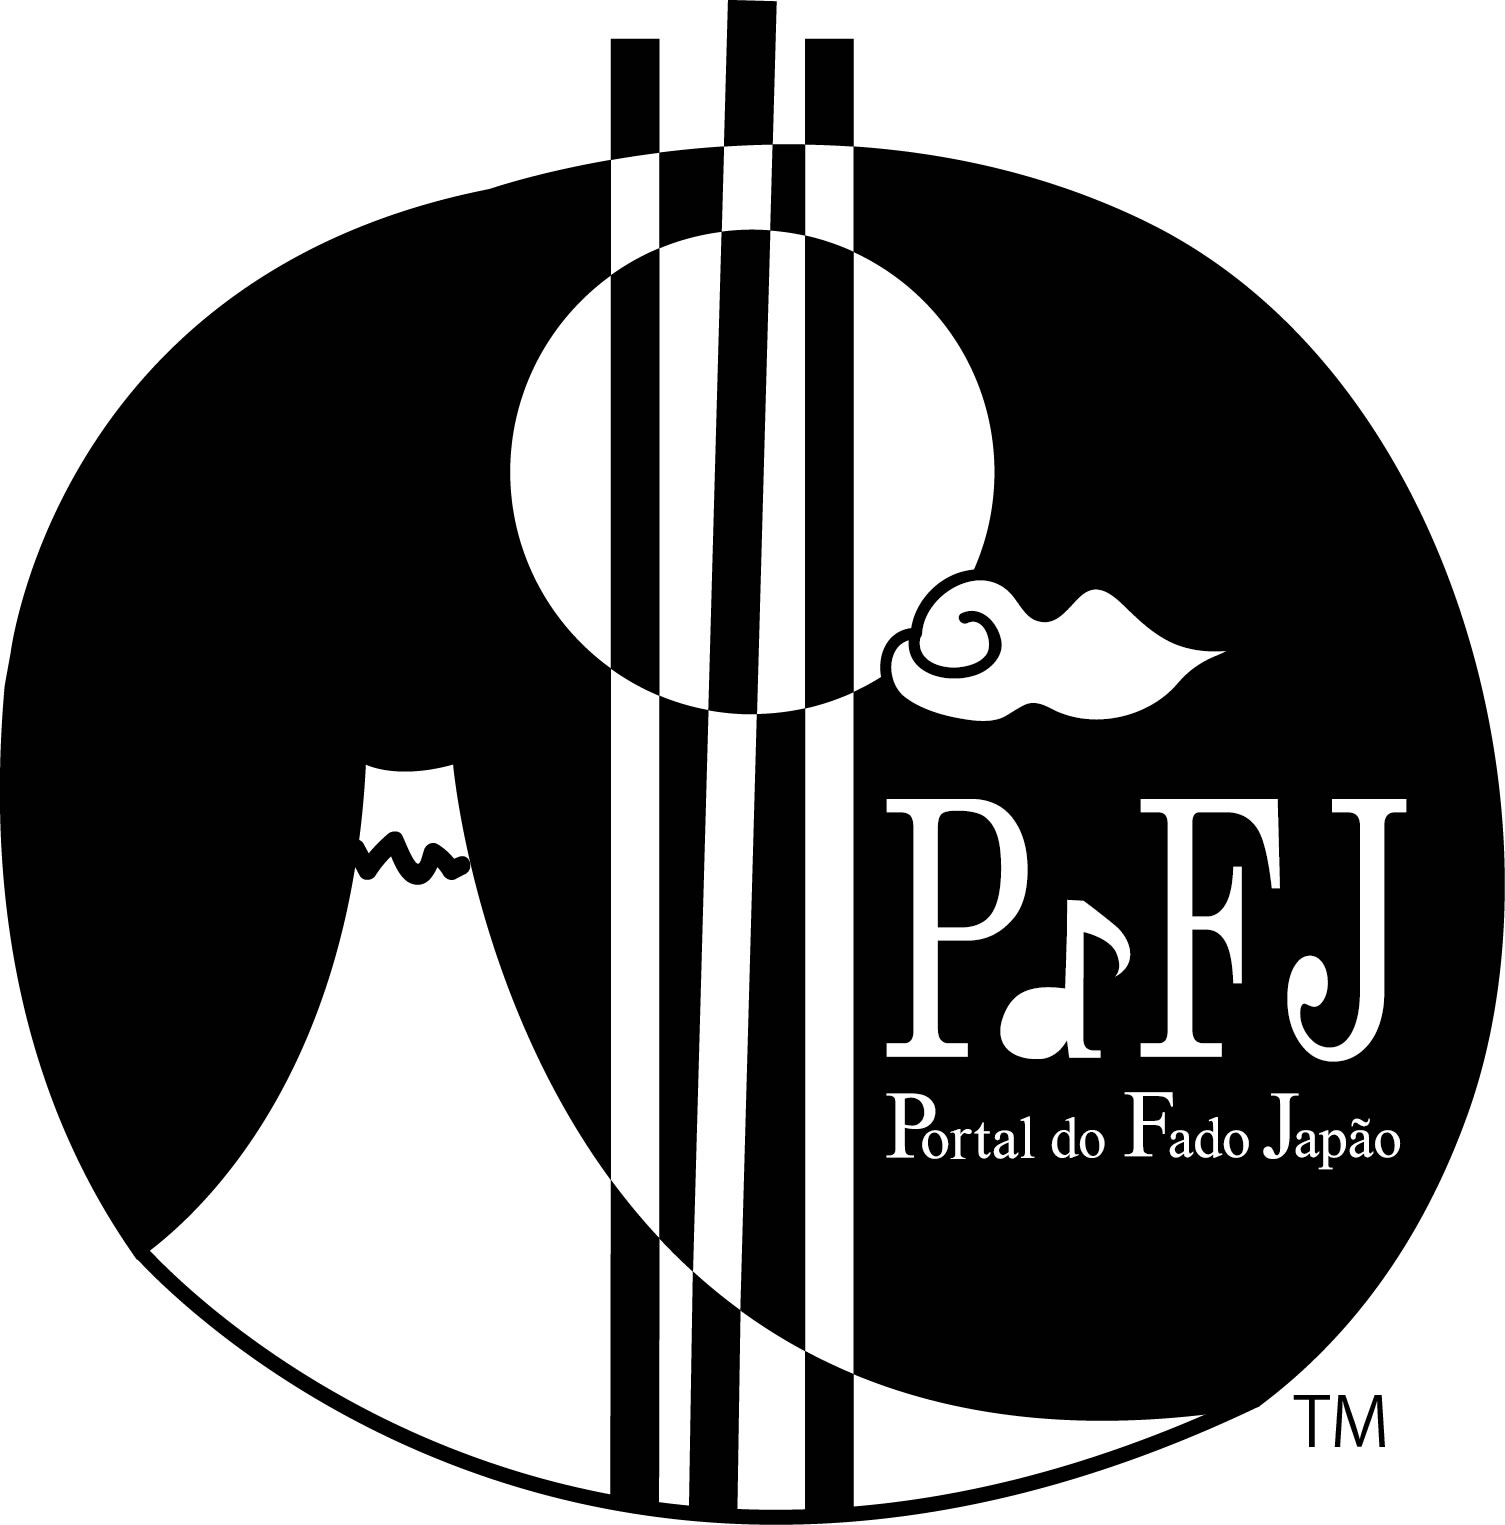 Trademark of Portal do Fado Japao